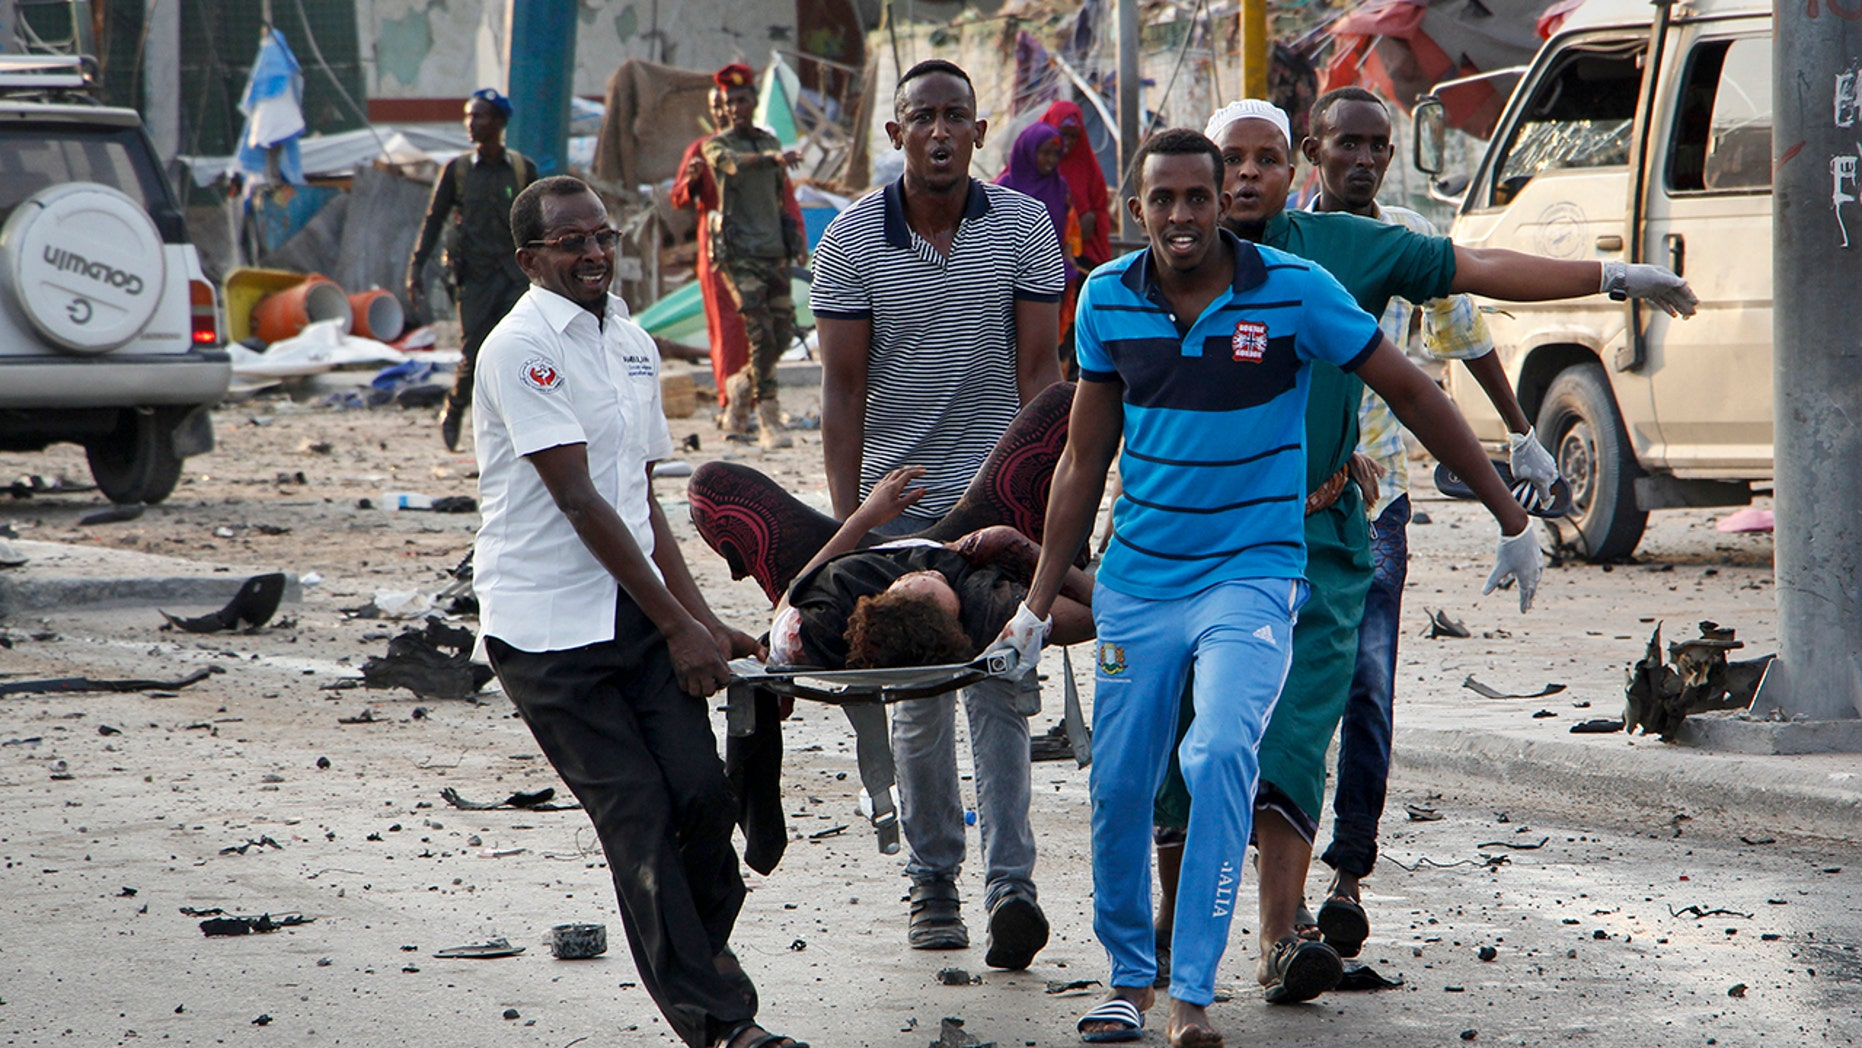 Somalia auto  bomb attack leaves at least 20 dead, police say